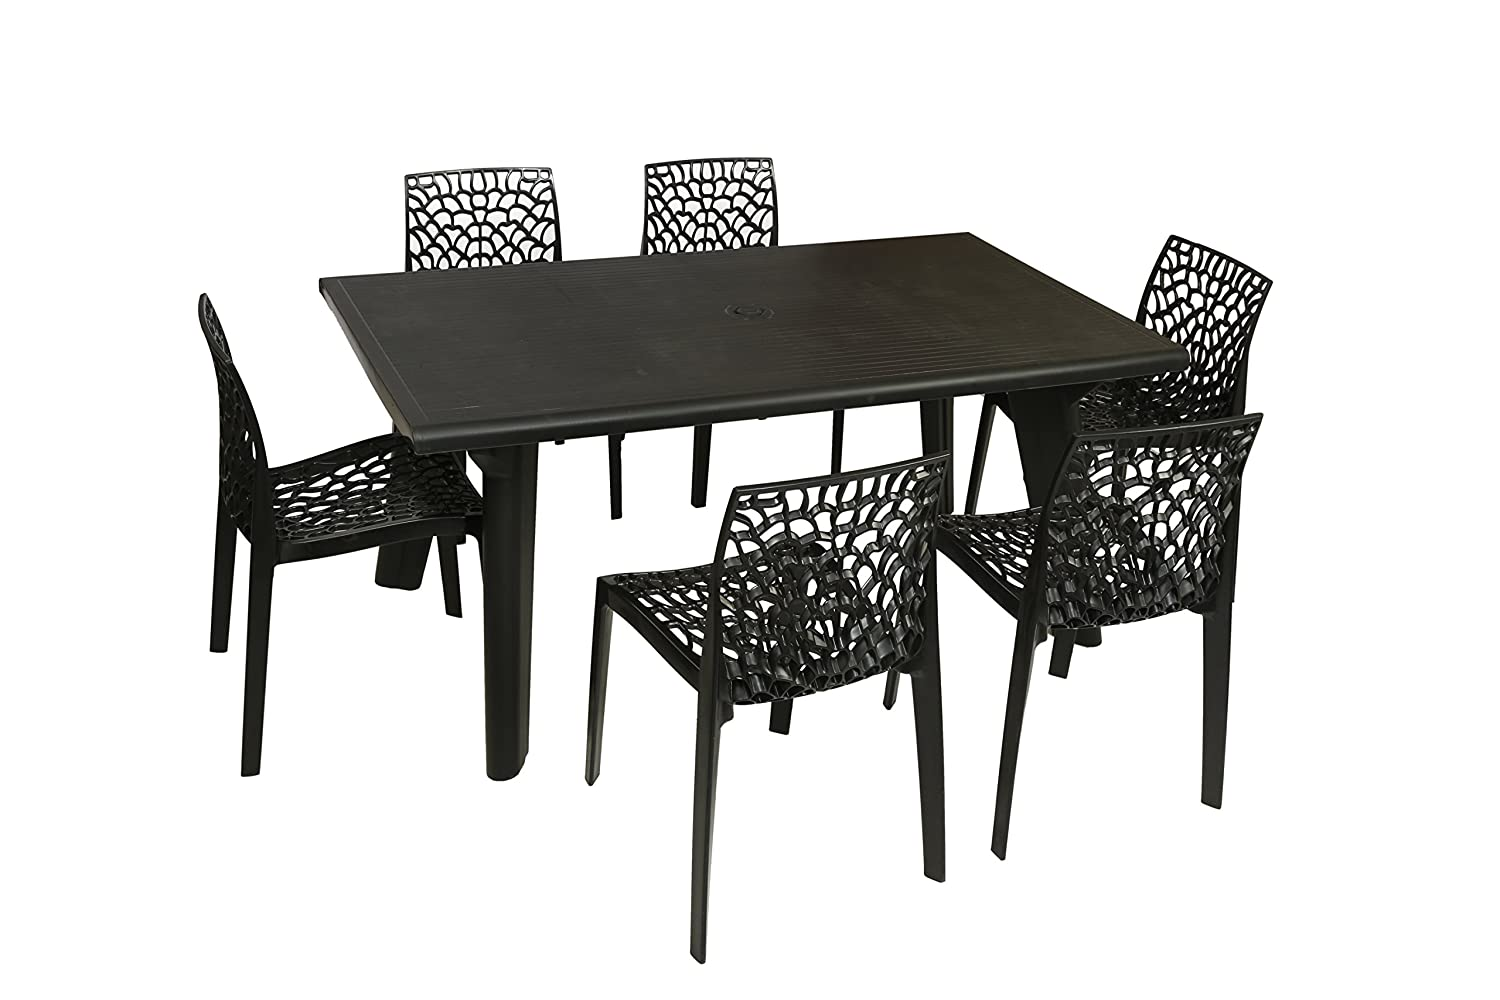 Supreme Bison Six Seater Dining Table Set Black Amazon In Home Kitchen